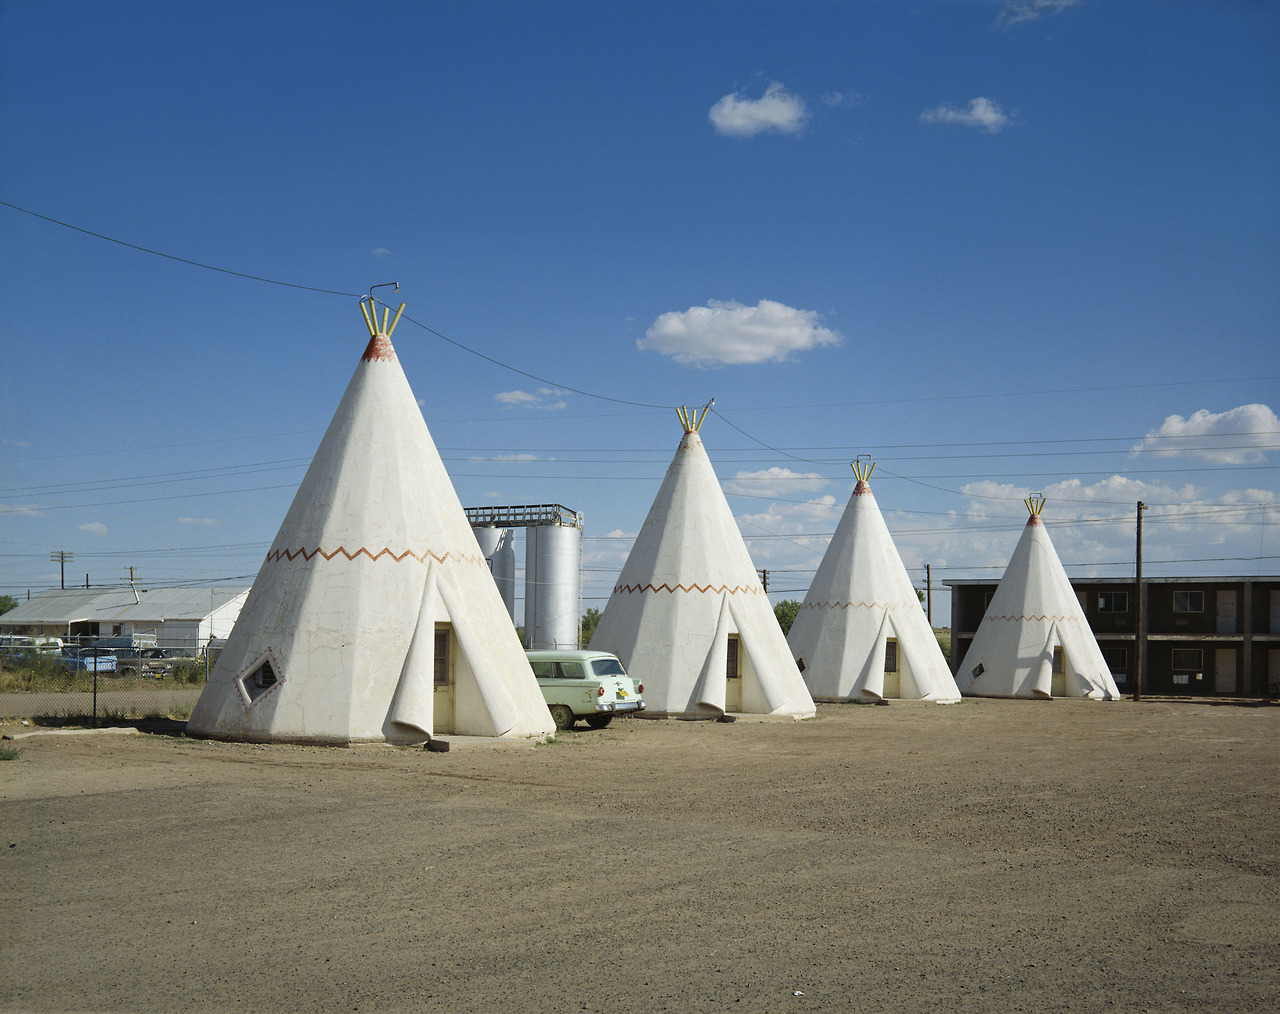 Wigwam Motel, Holbrook, AZ. August 10, 1973. Copyright Stephen Shore, Courtesy of Edwynn Houk Gallery